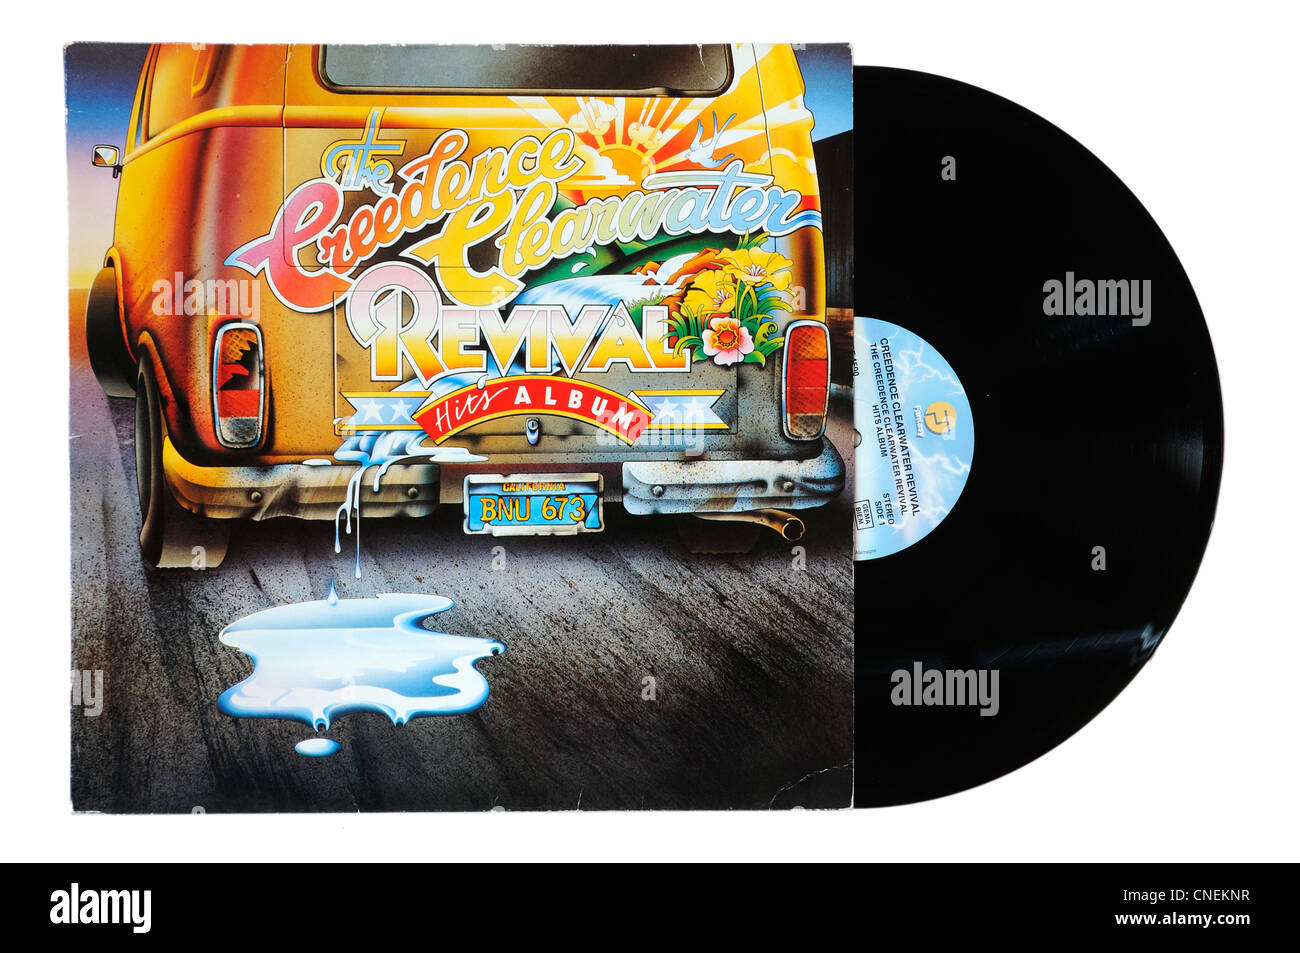 Creedence Clearwater Revival-Hits-album Stockbild